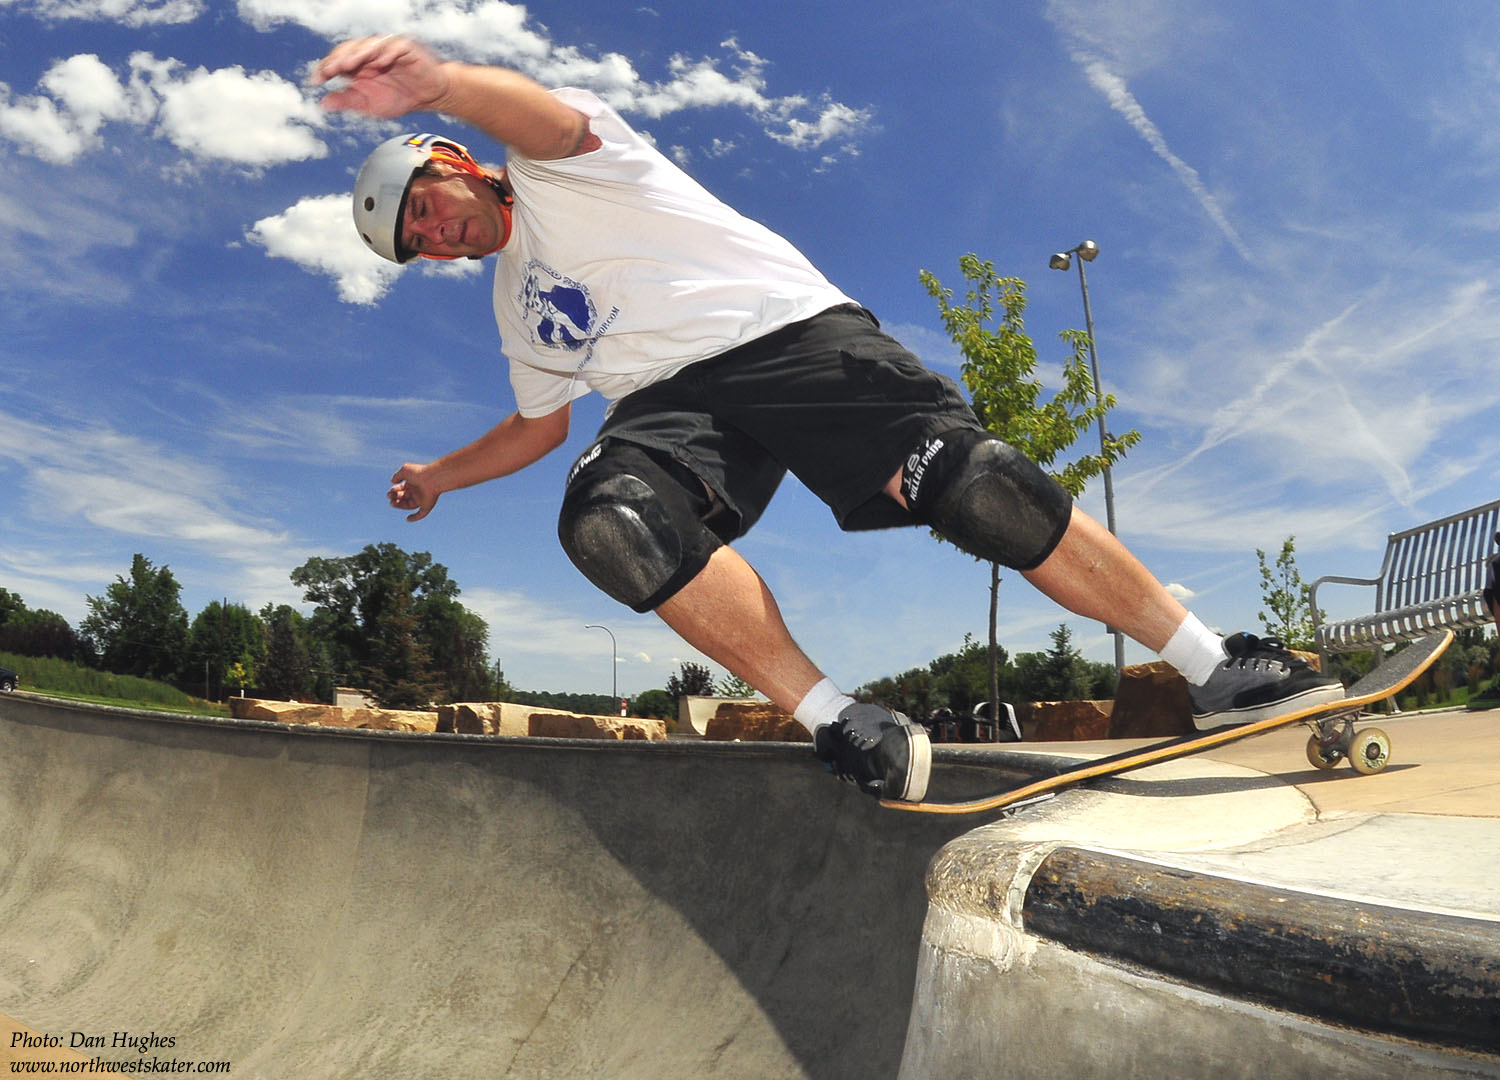 arvada colorado skatepark photos page 3